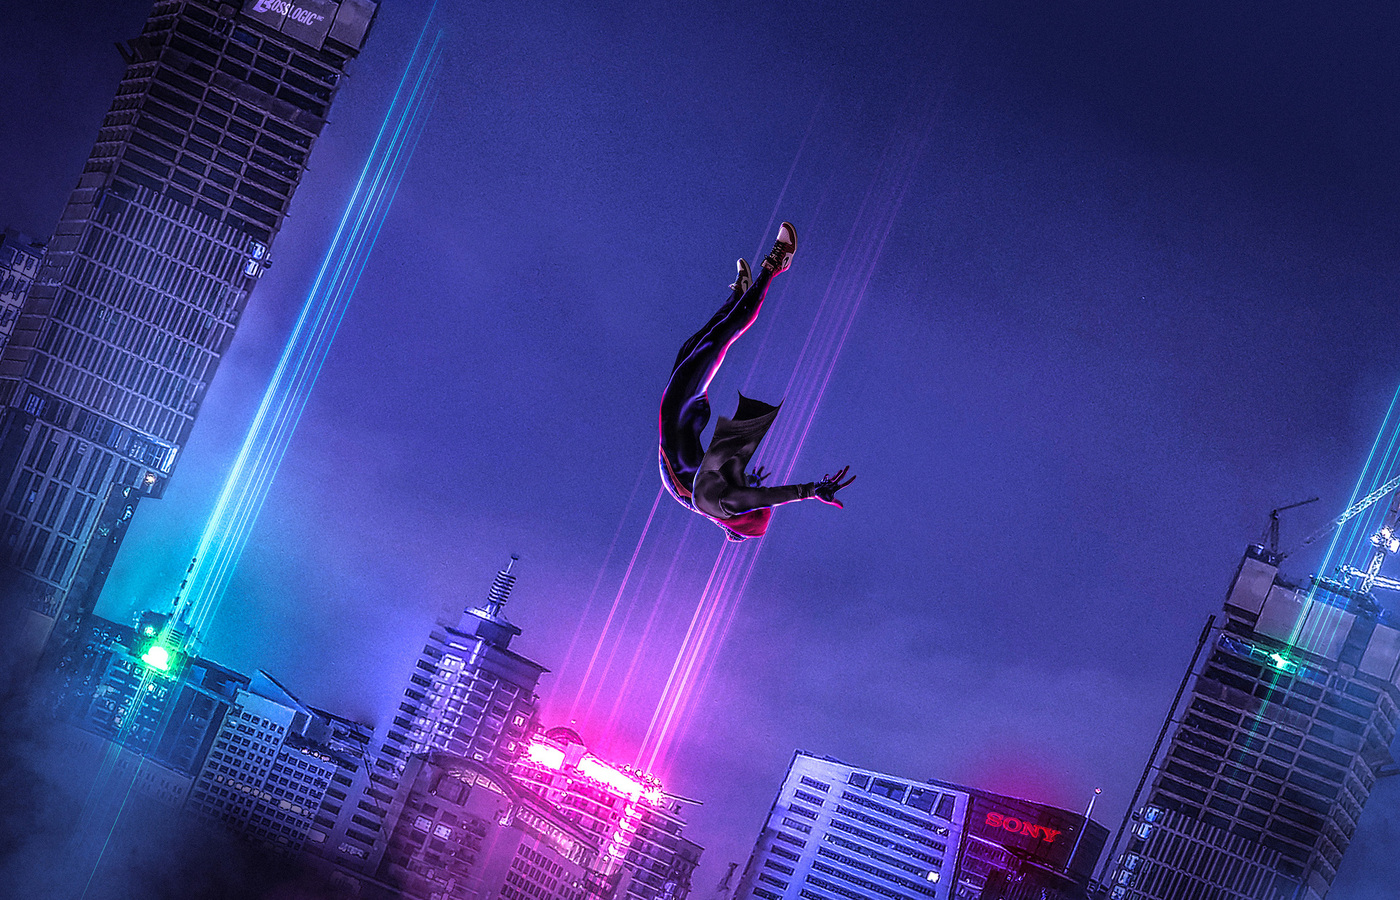 spiderman-into-the-spider-verse-art-7y.jpg